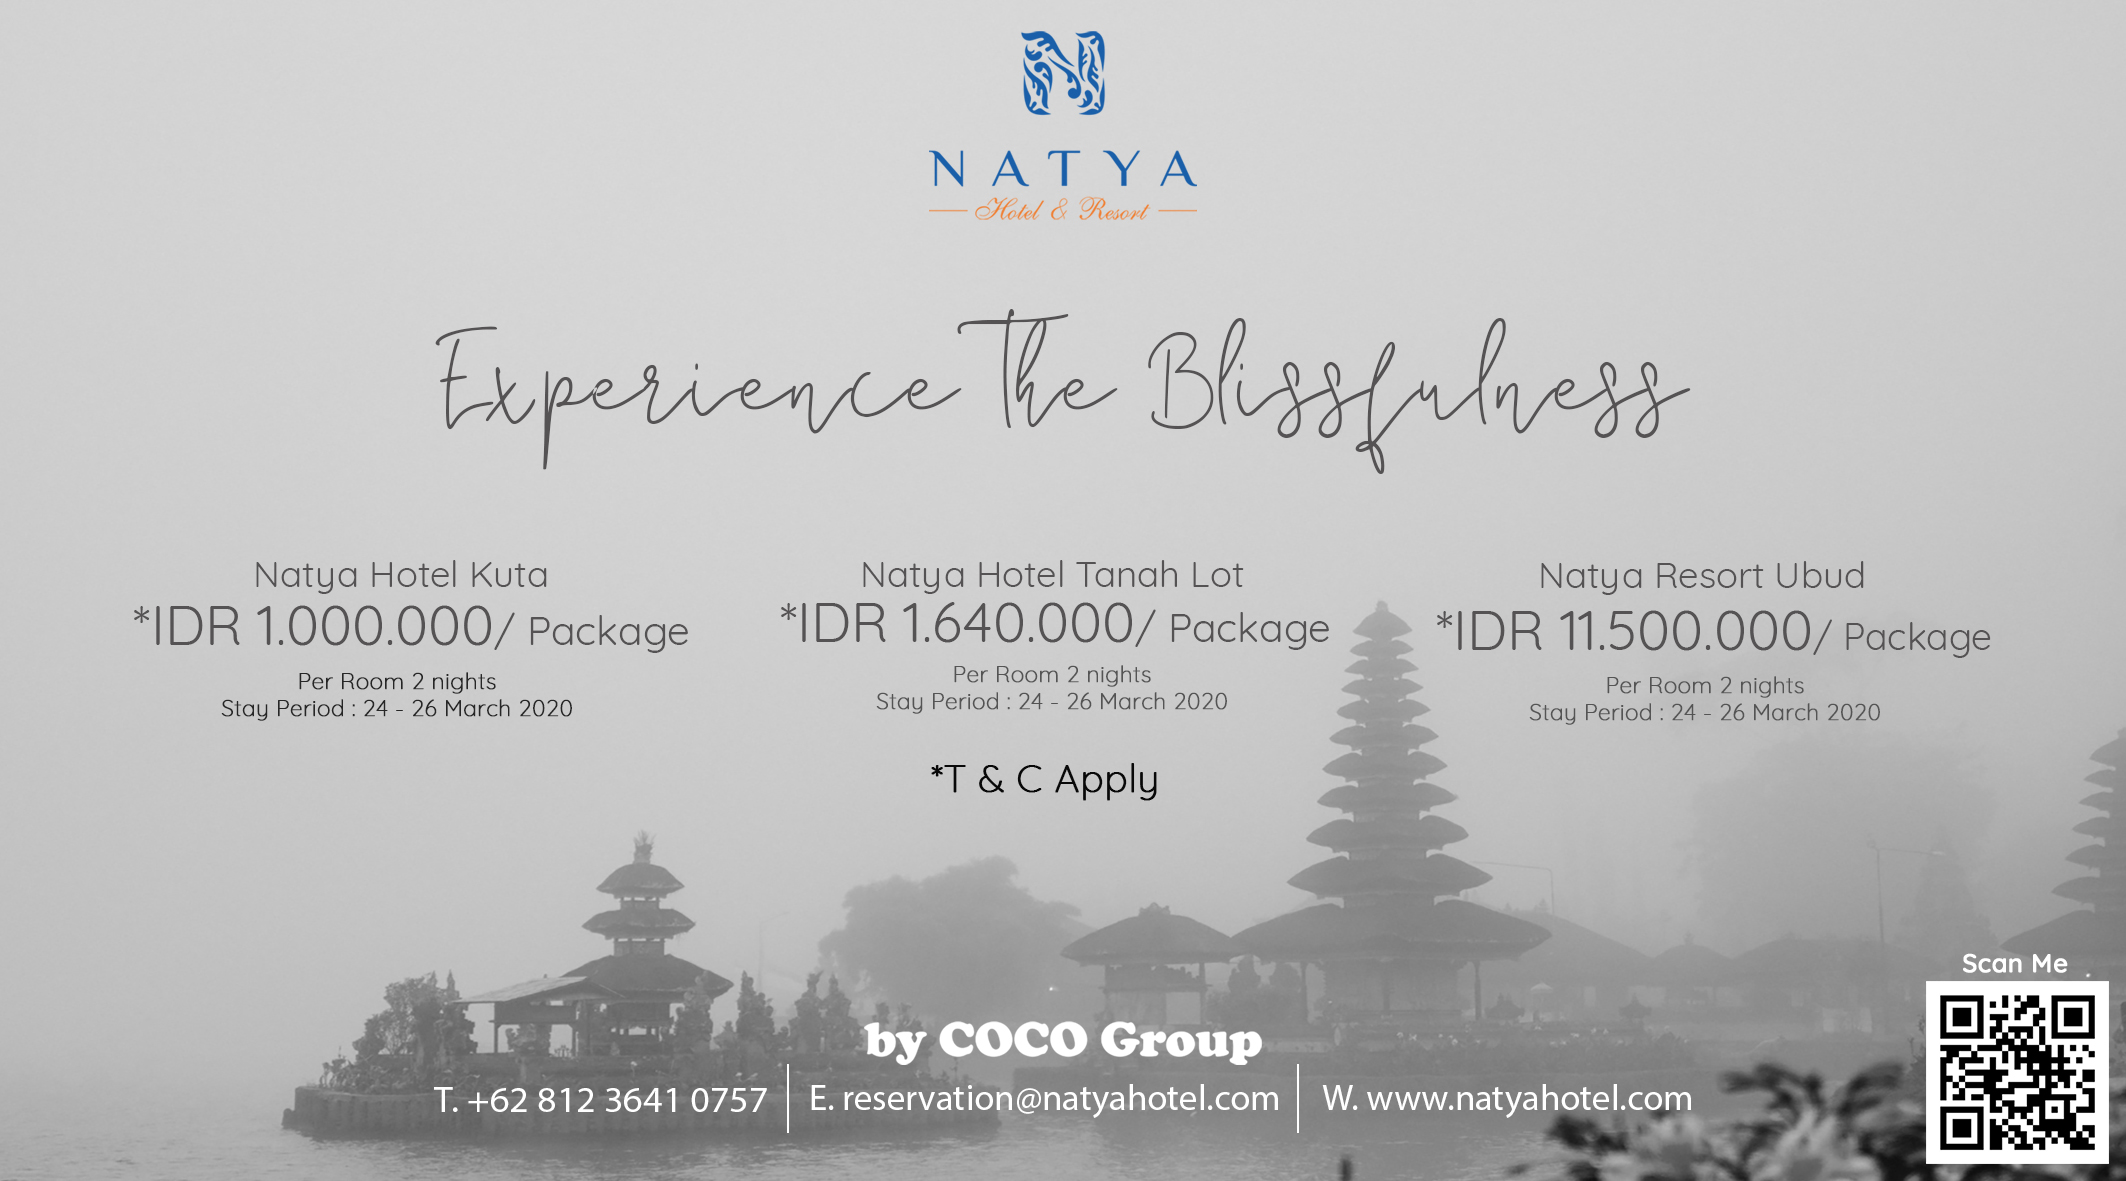 https://highend-traveller.com/natya-hotels-resort-offers-the-beauty-of-bali-and-lombok/